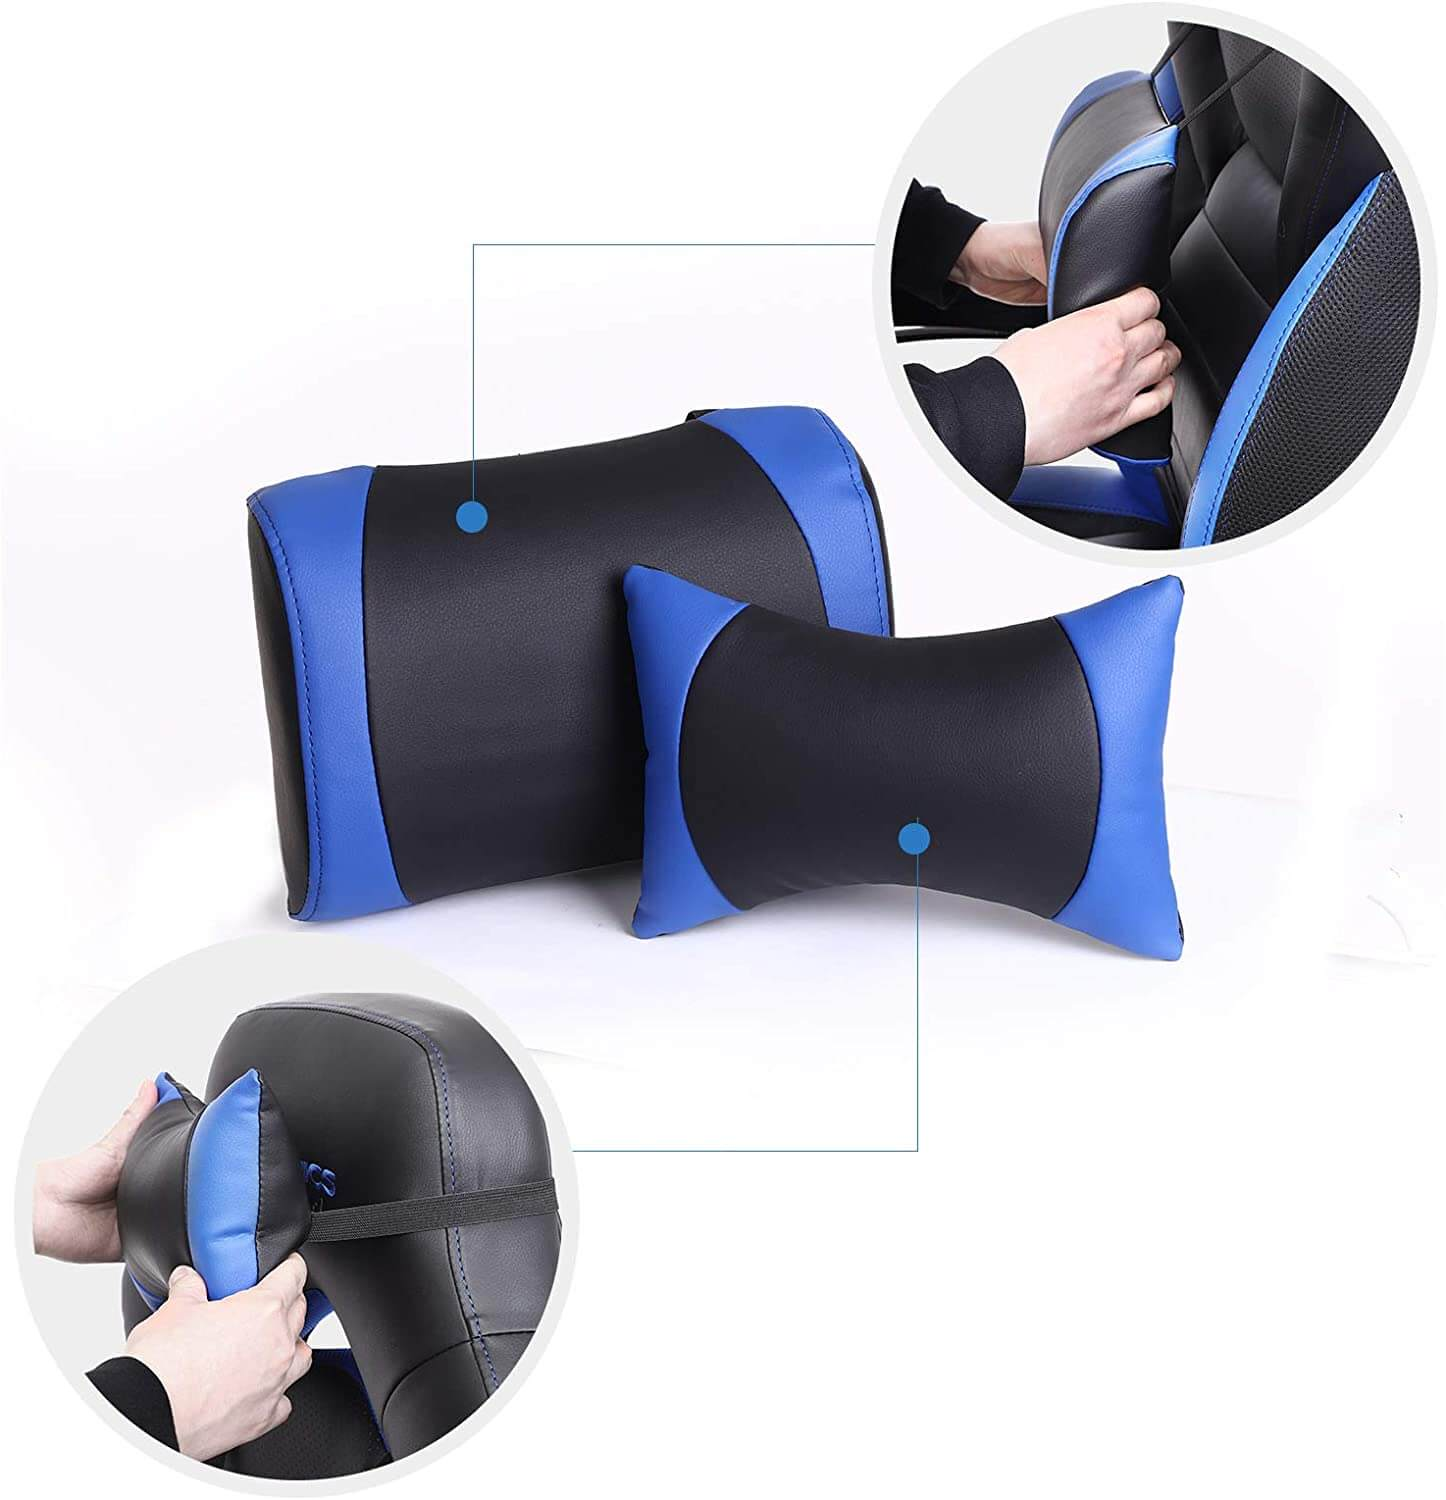 Songmics chair with comfy seat cushion s and neck padding